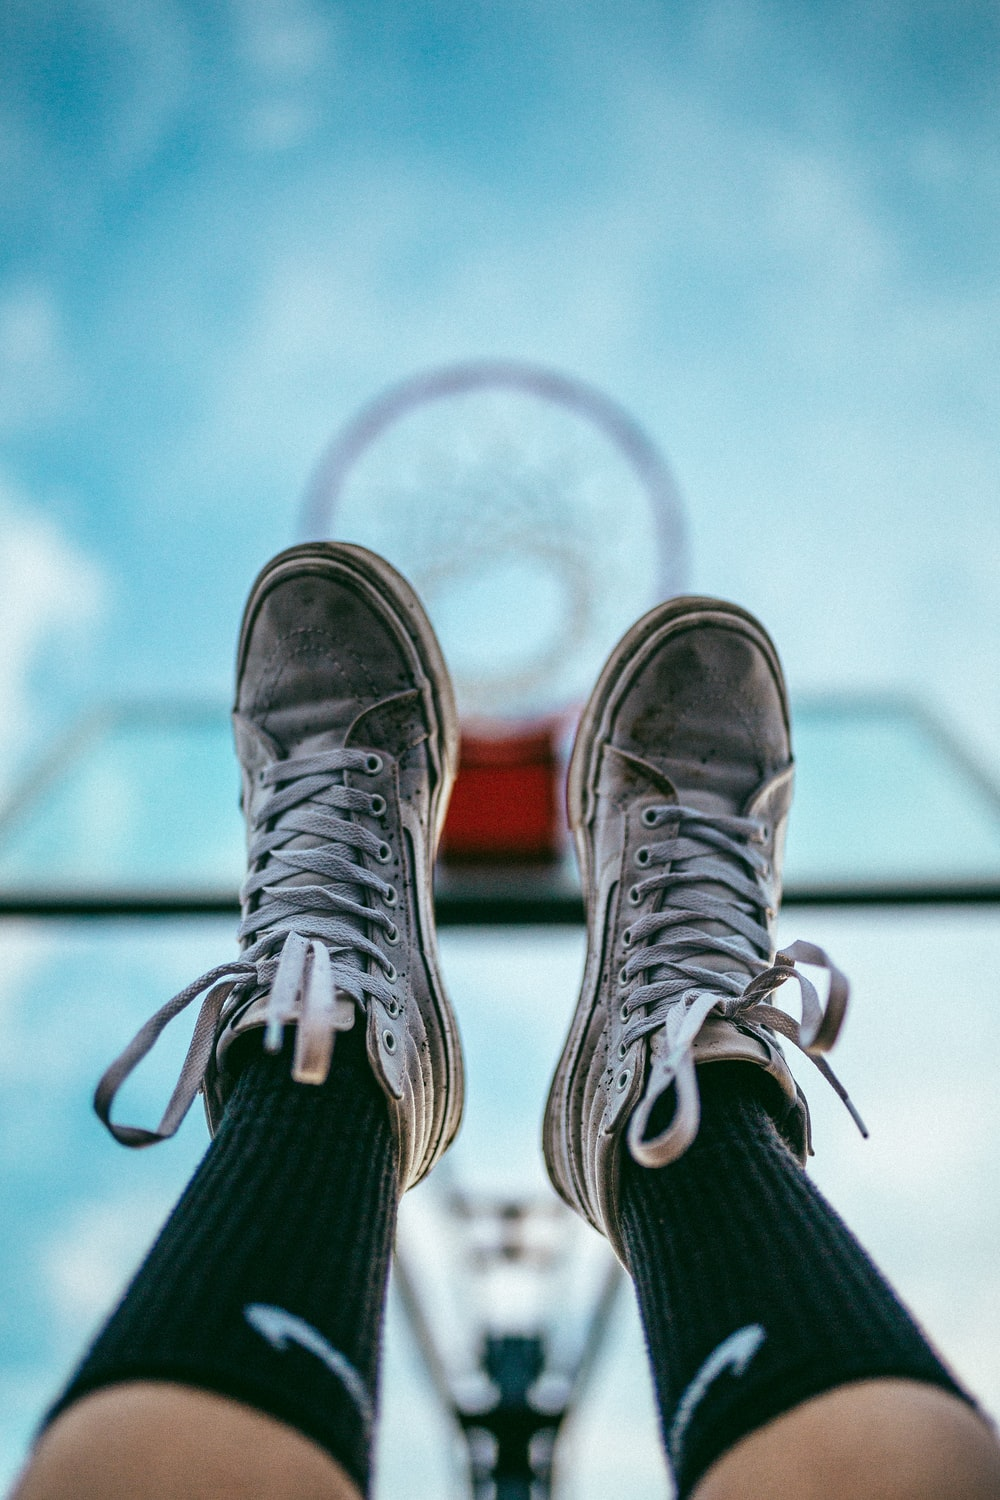 feet with dirty white basketball shoes raised into air under basketball hoop